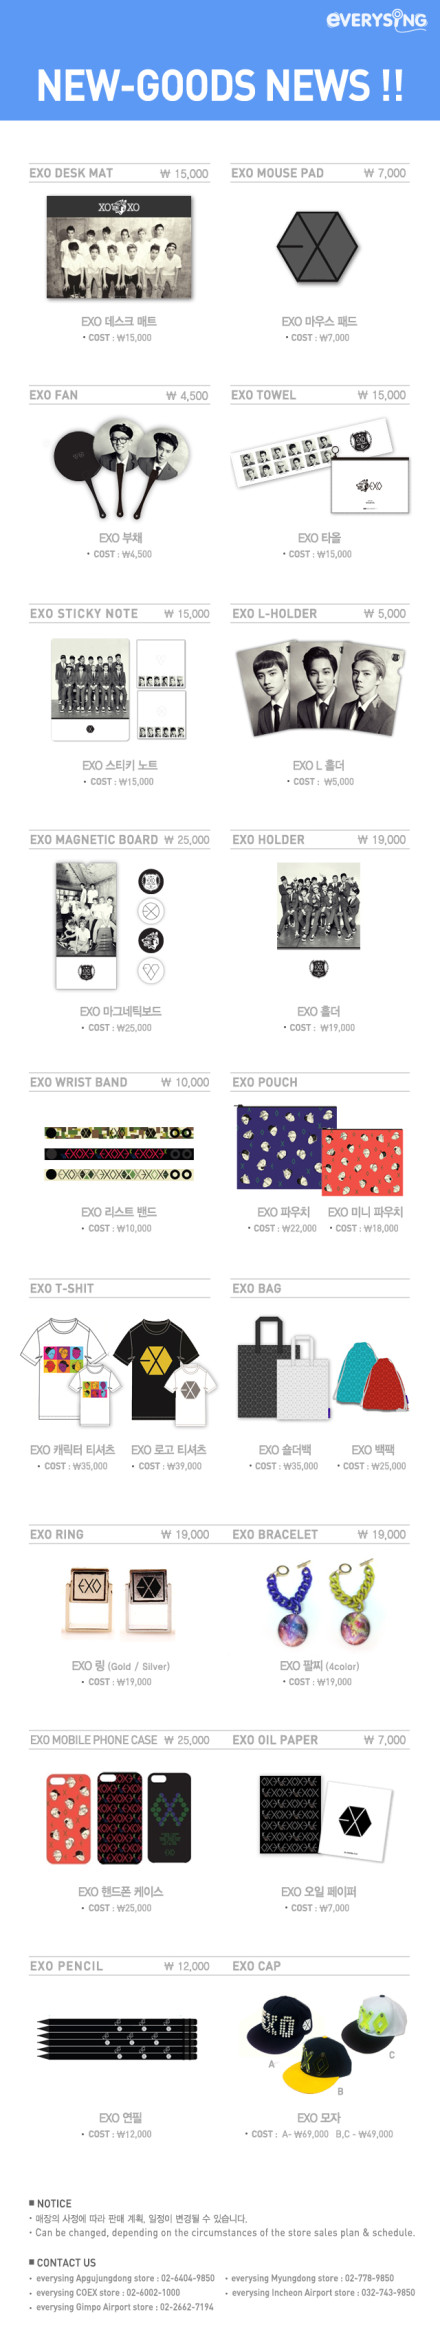 everysing merchandise update